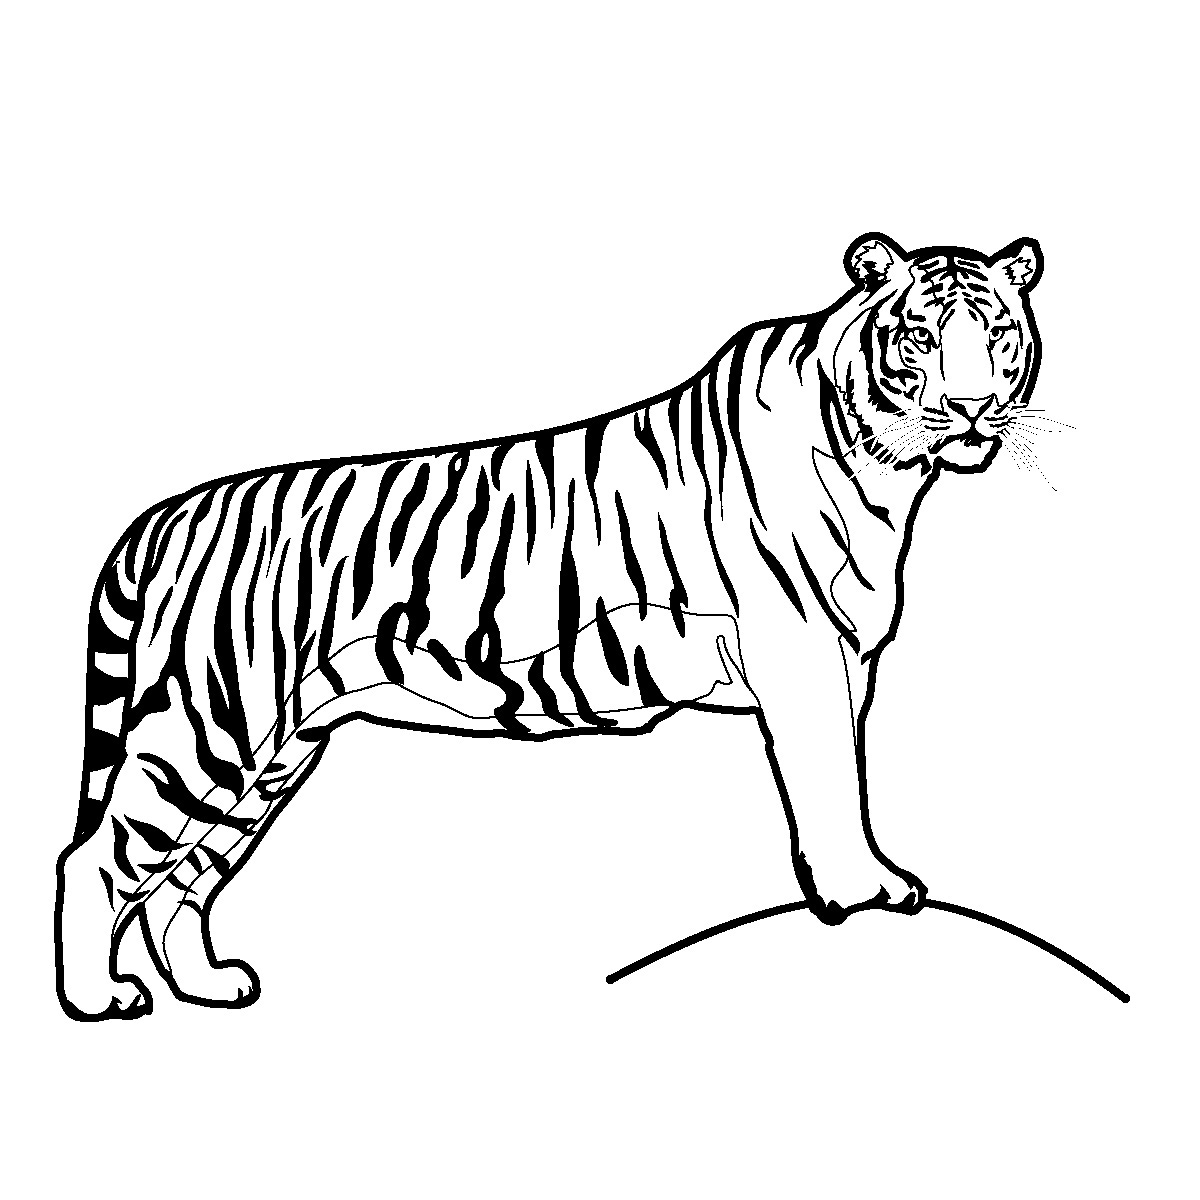 tiger images for colouring tiger coloring pages the sun flower pages colouring images tiger for